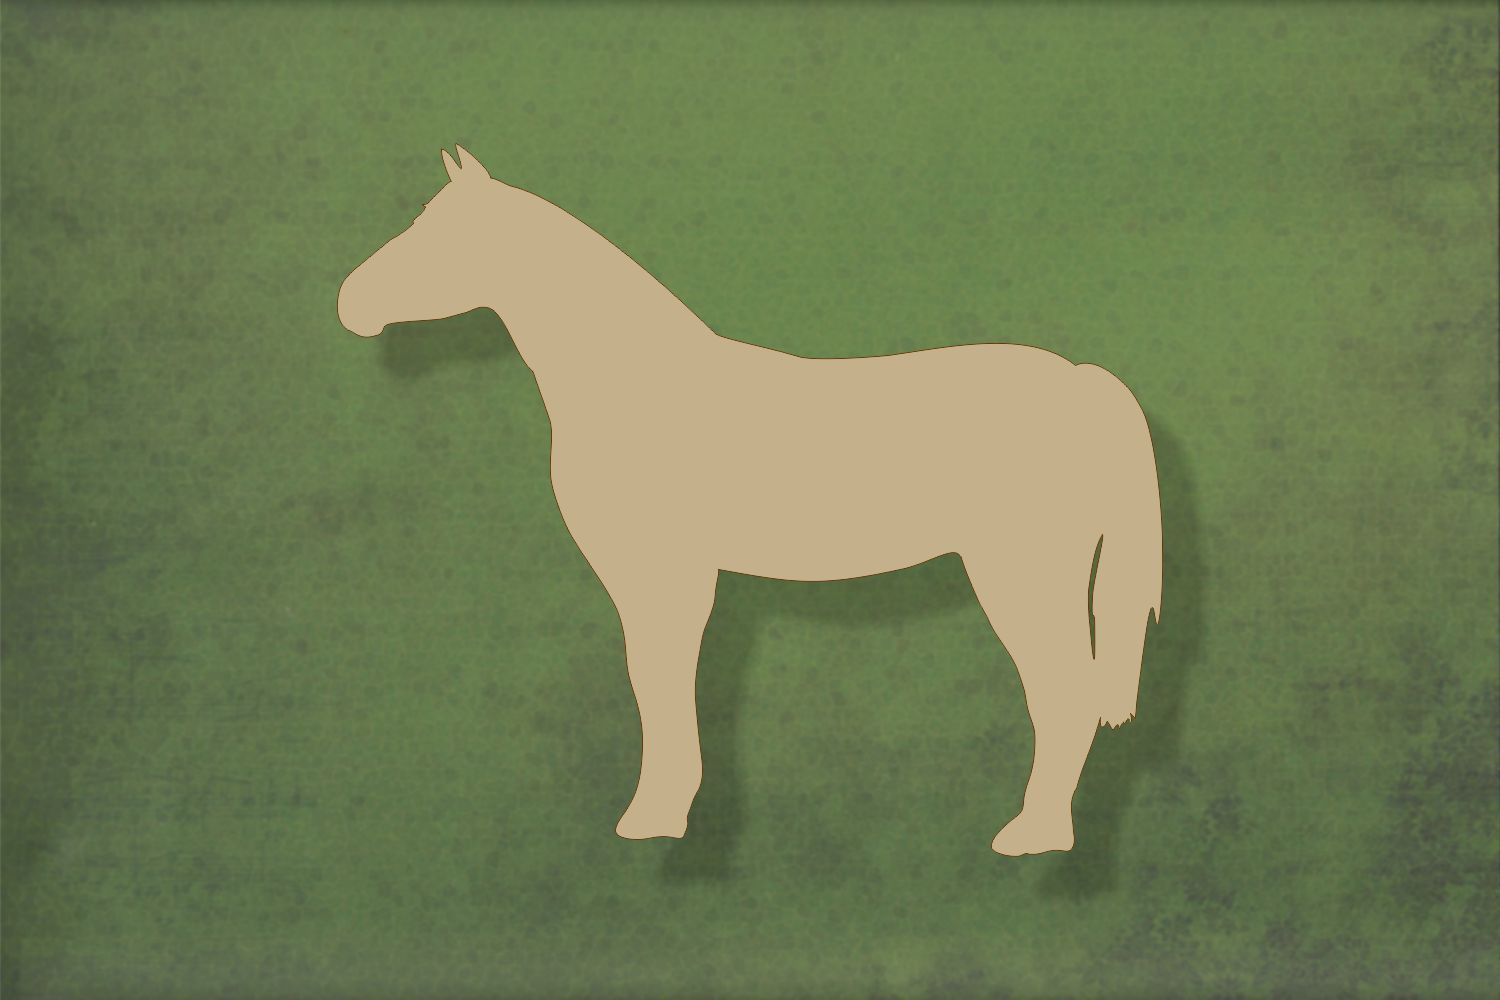 Laser cut, blank wooden Horse standing shape for craft